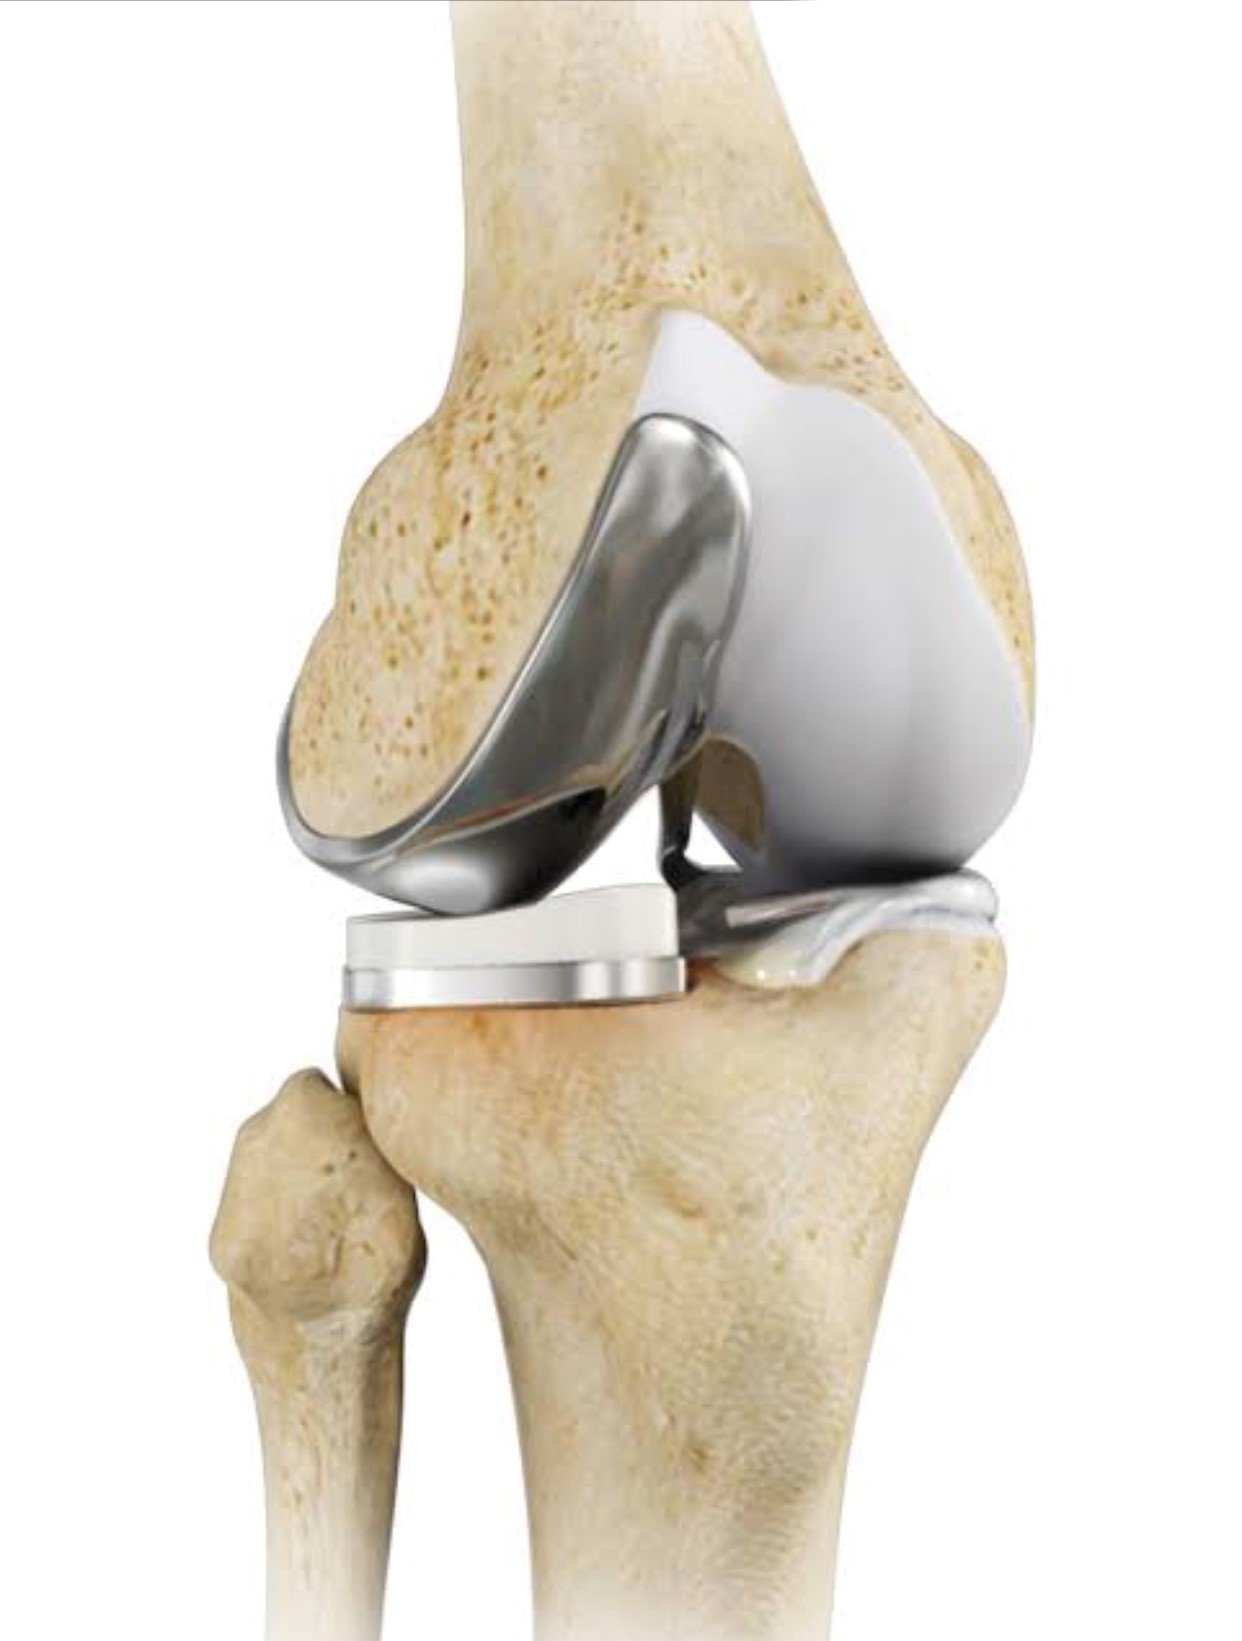 Unicomp-partial-knee-replacement_BOSM